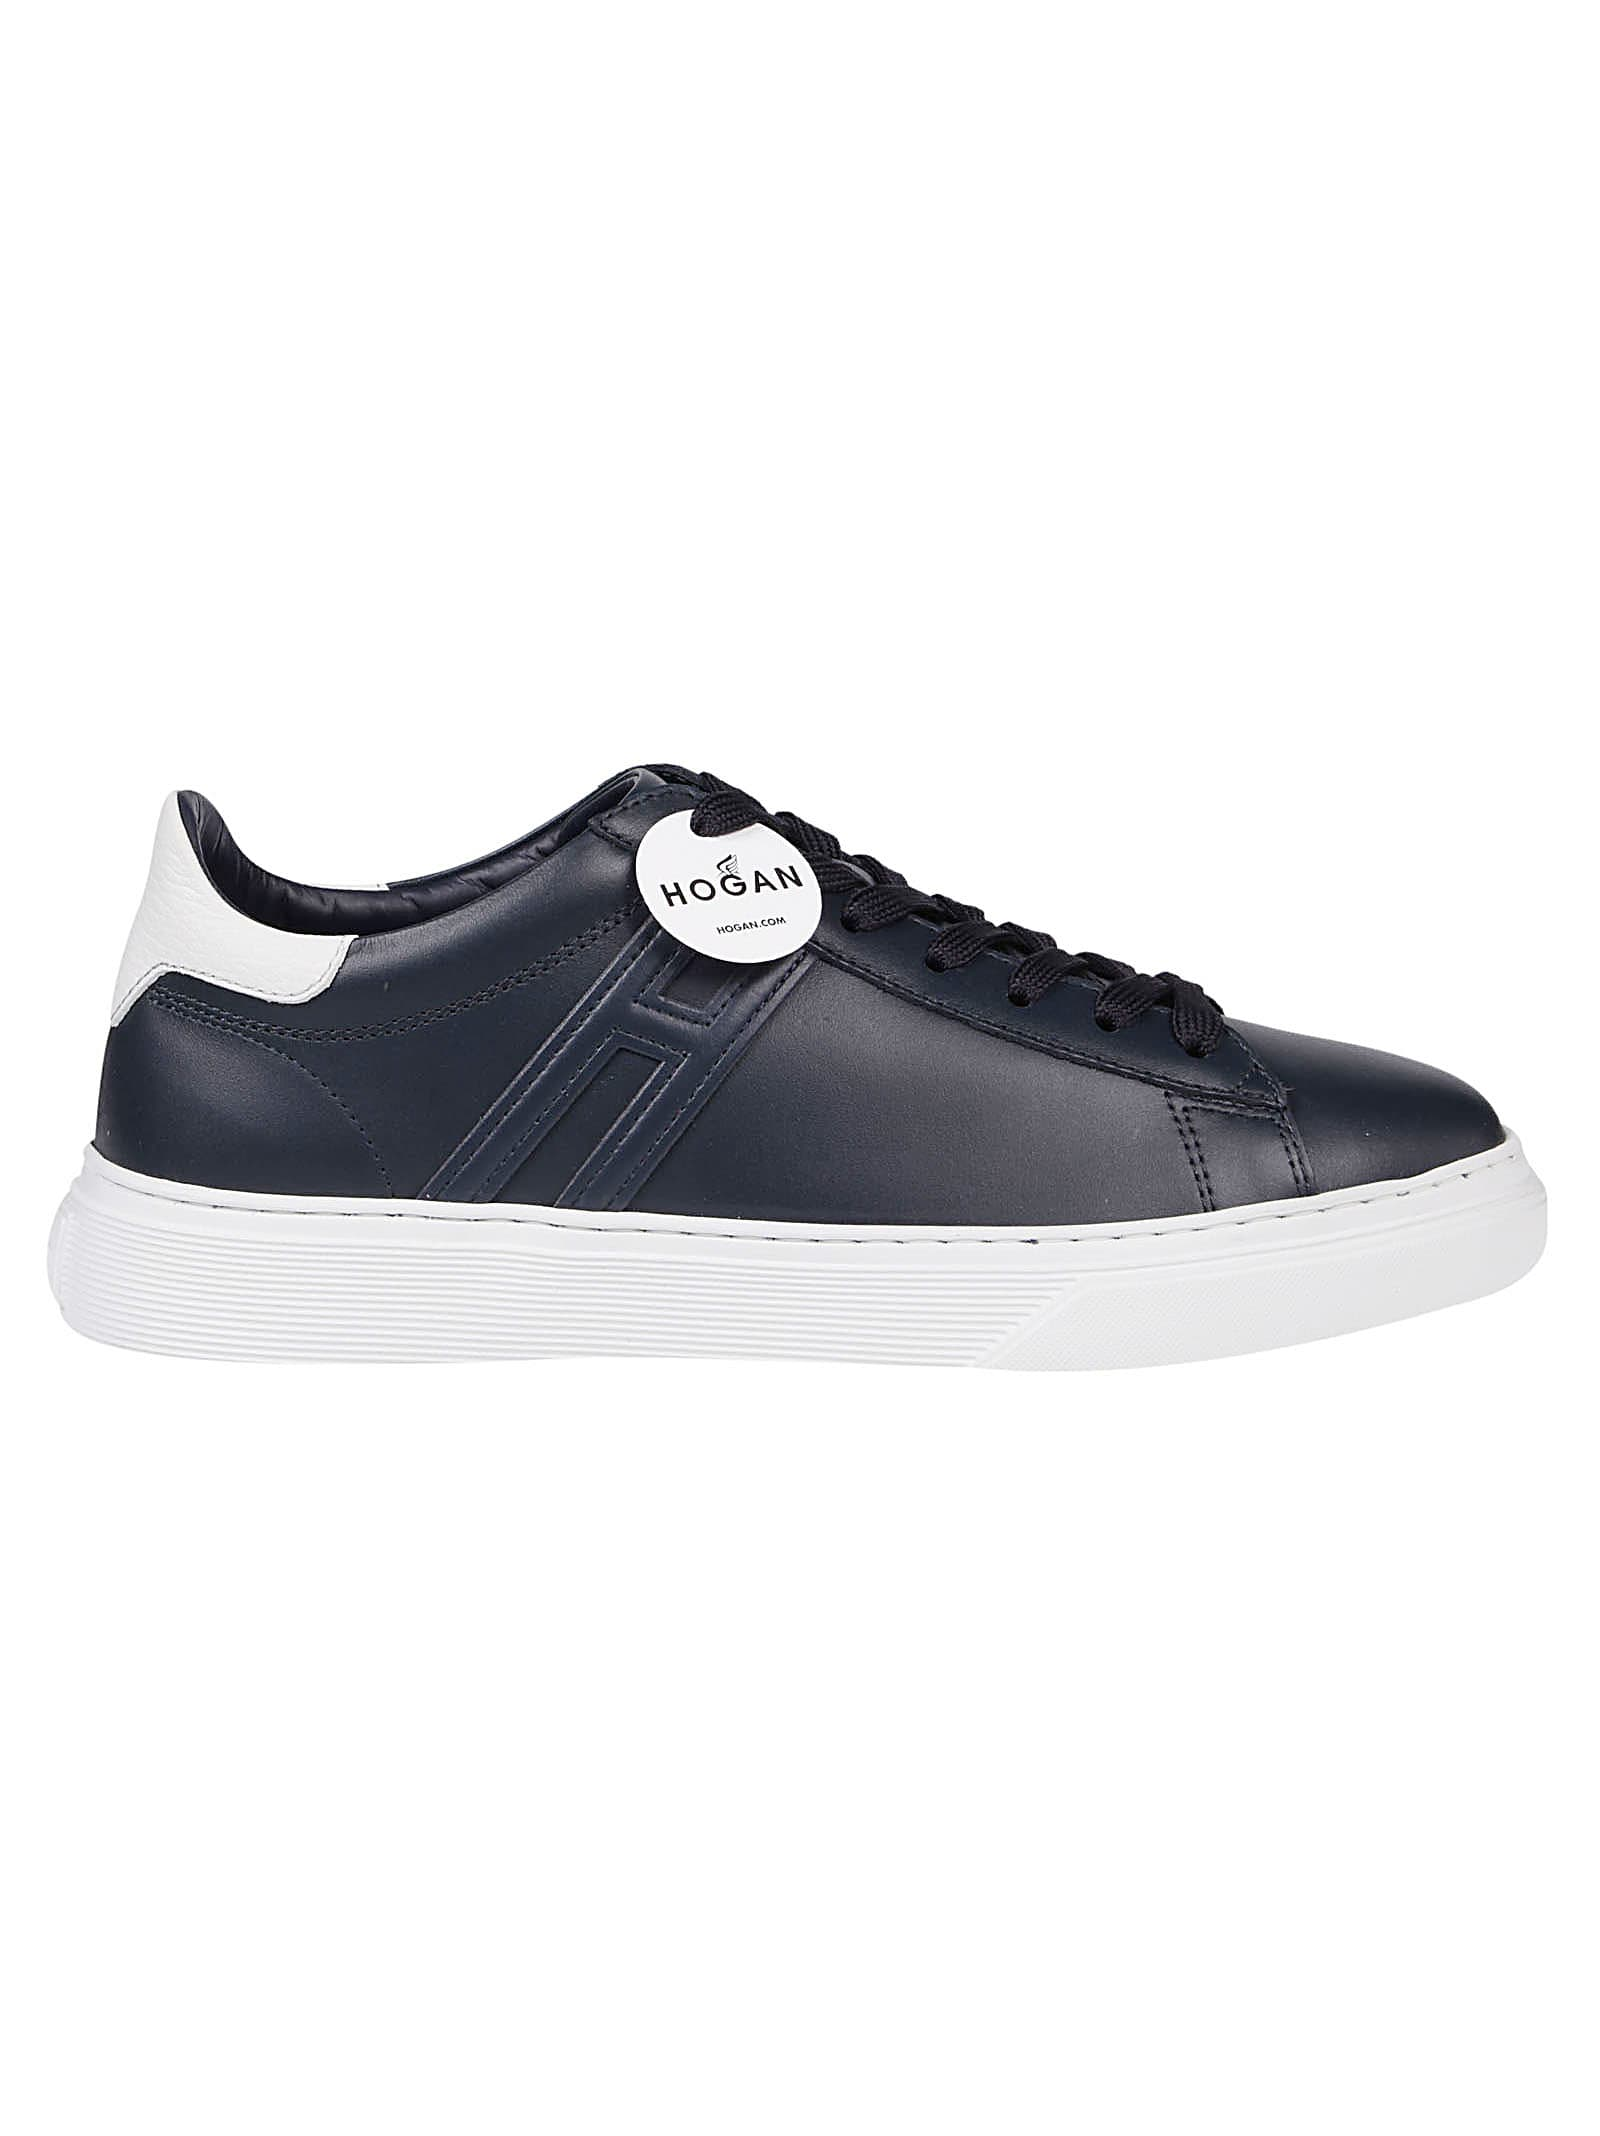 Hogan Low tops H365 SNEAKER